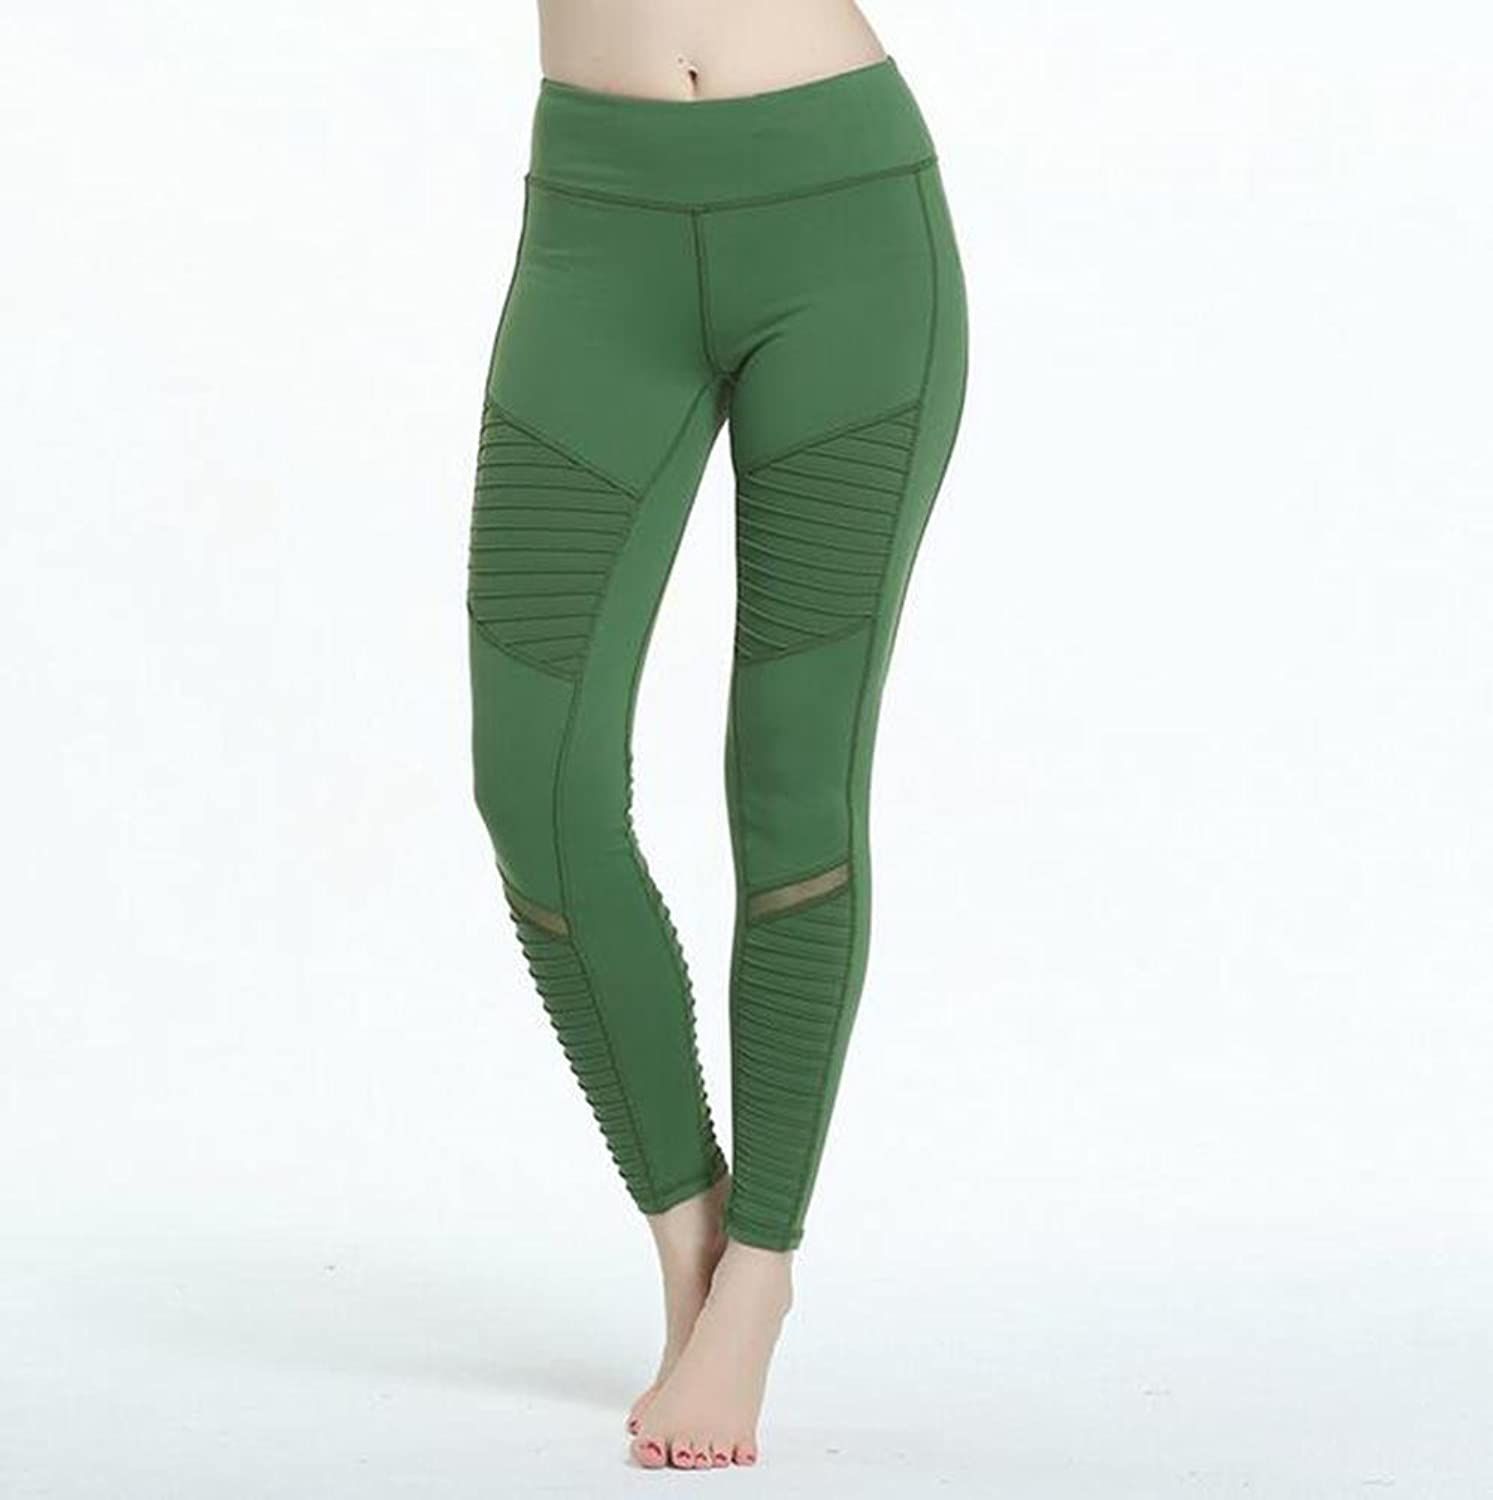 Yoga Pants Tights Breathability Natural Stretchy Sports Wear Women's